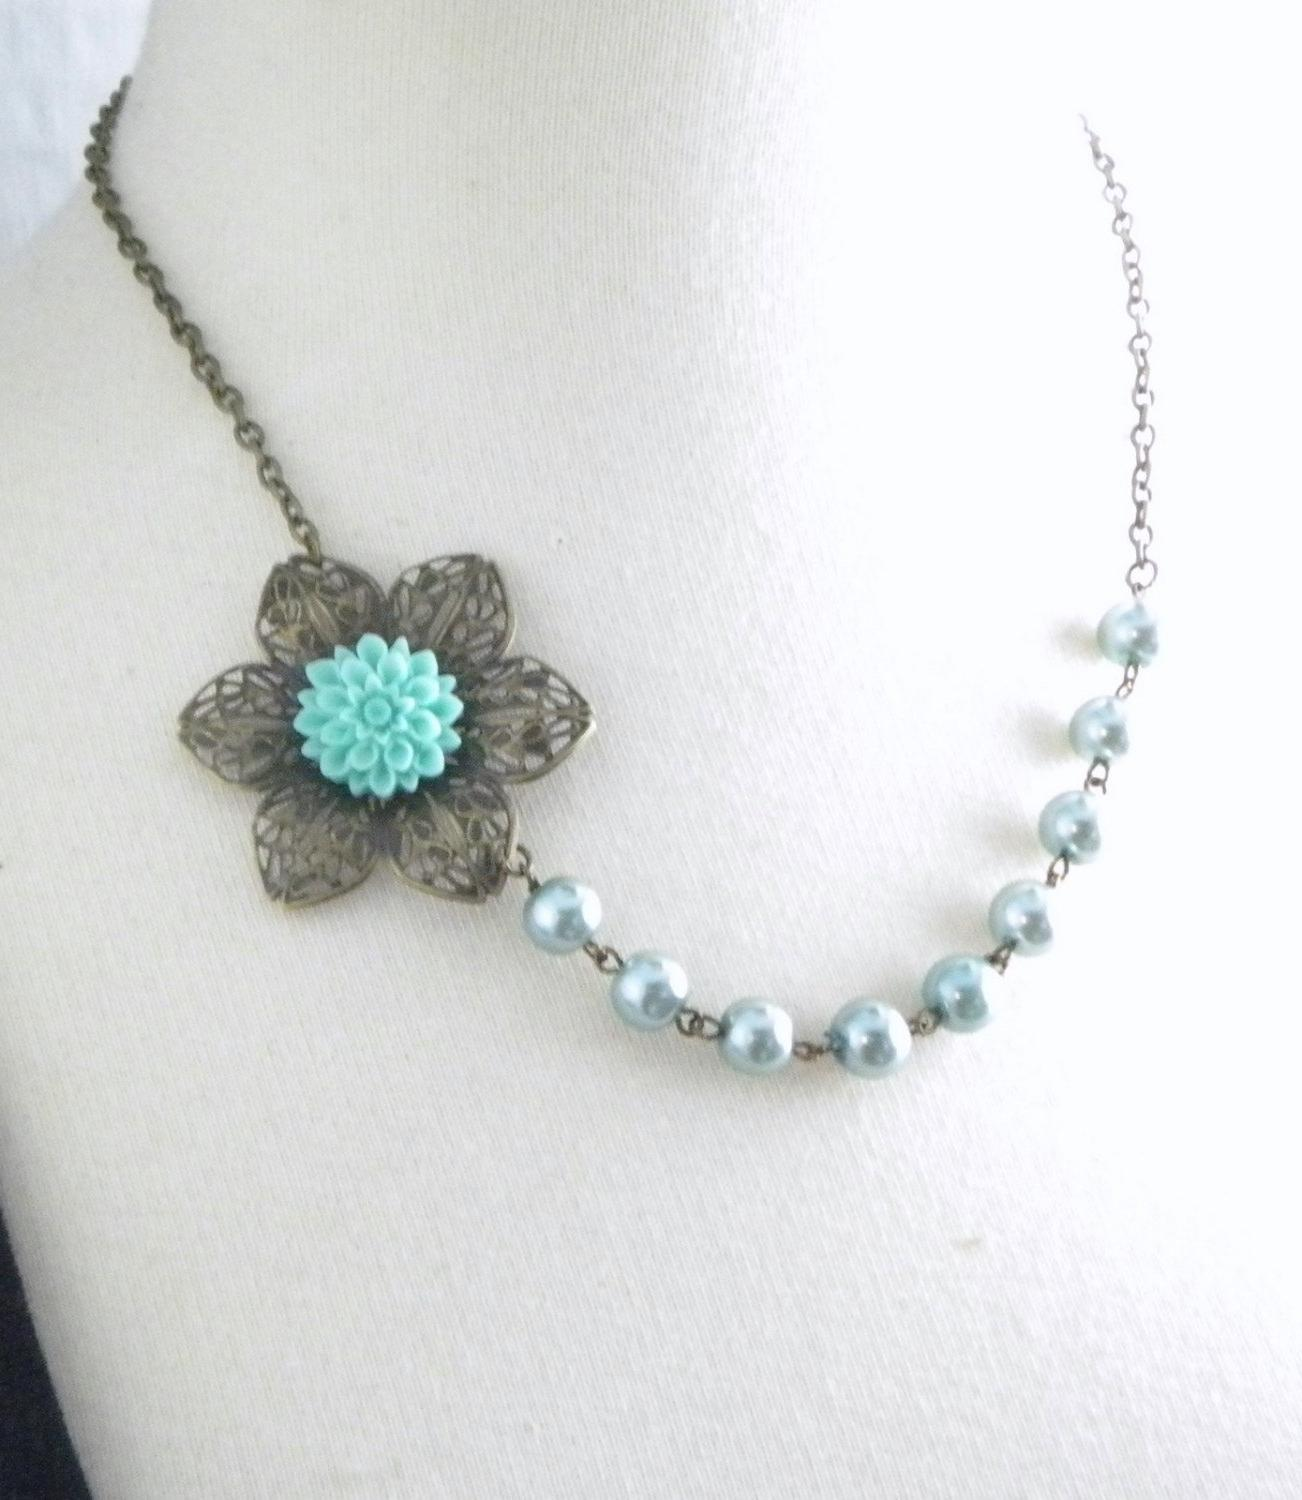 Aqua Blue Wedding Flower Necklace. From cymbaline84